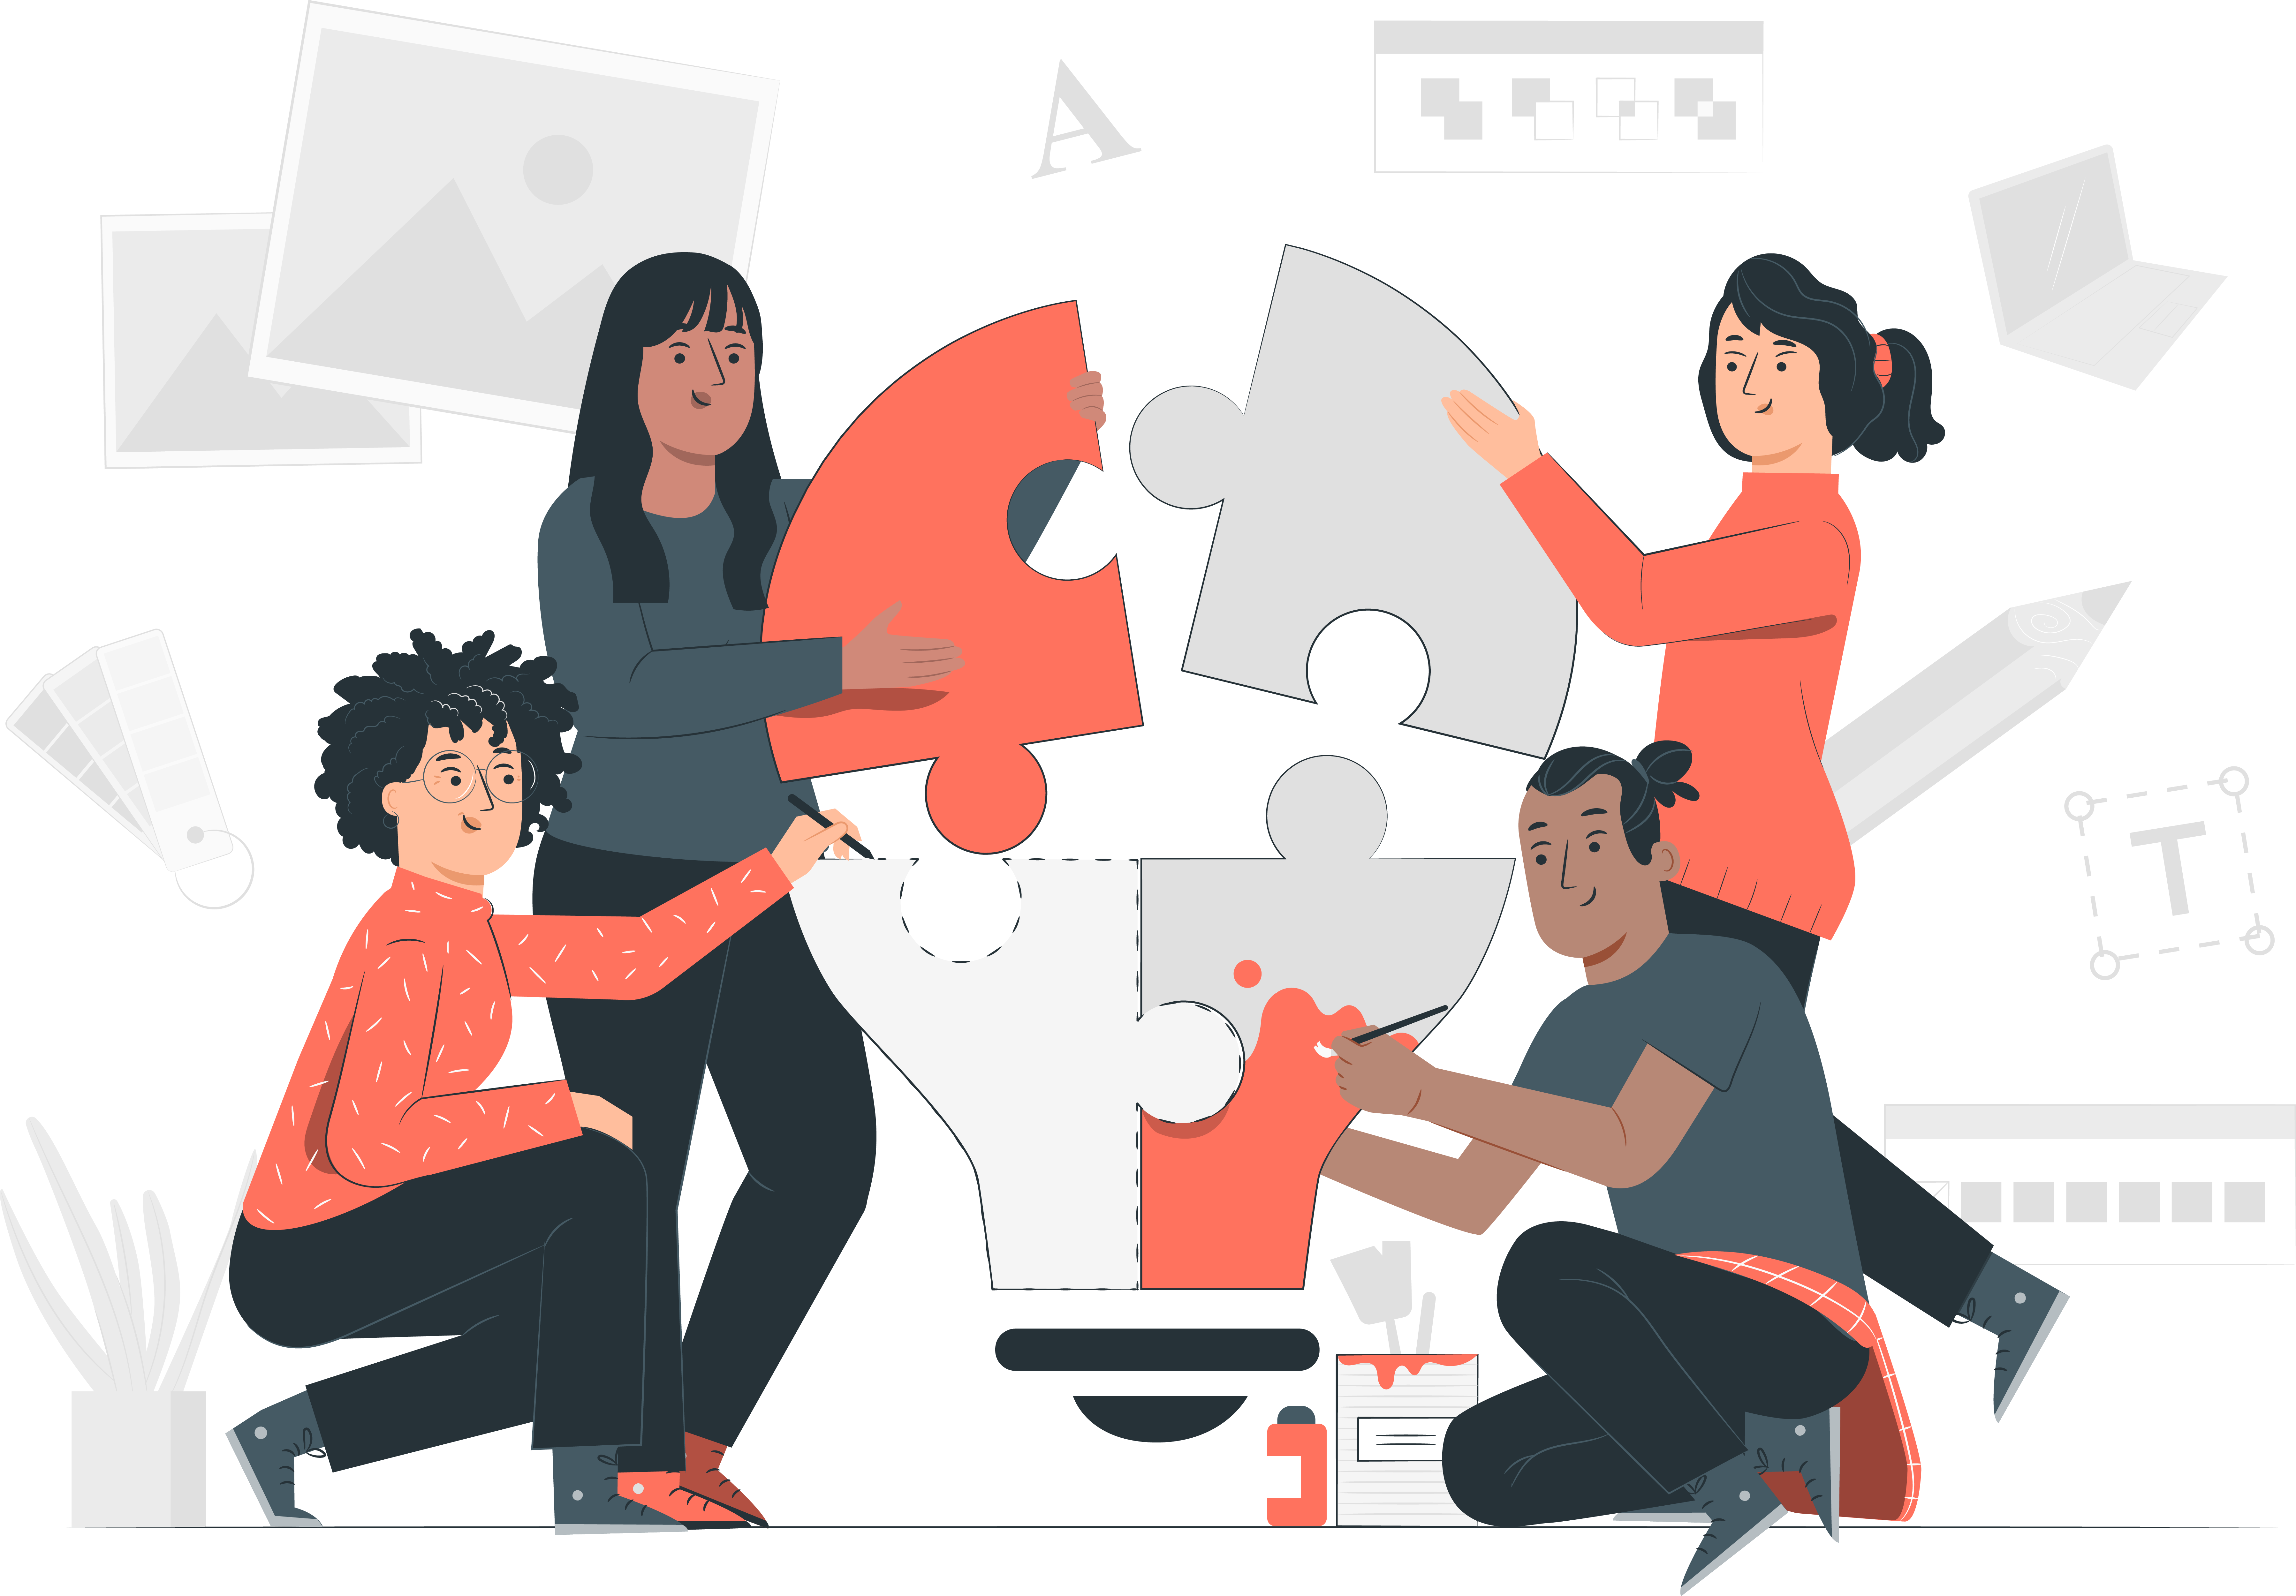 The illustration depicts a group of people, each wearing orange and dark gray, assembling a large puzzle. Each of the four figures holds a piece of the puzzle that, when assembled, resembles a large light bulb. On the left, a femme-presenting person with curly hair uses their pen to draw a dotted line. Above her is another femme-presenting person, holding an orange puzzle piece about to snap into place. On the right, a femme-presenting person holds a gray puzzle piece toward the orange one. Below her is a male-presenting figure painting on a puzzle piece with orange paint. Behind the people are faint drawings of creative things, such as pictures, pencils, typography, and paint brushes.